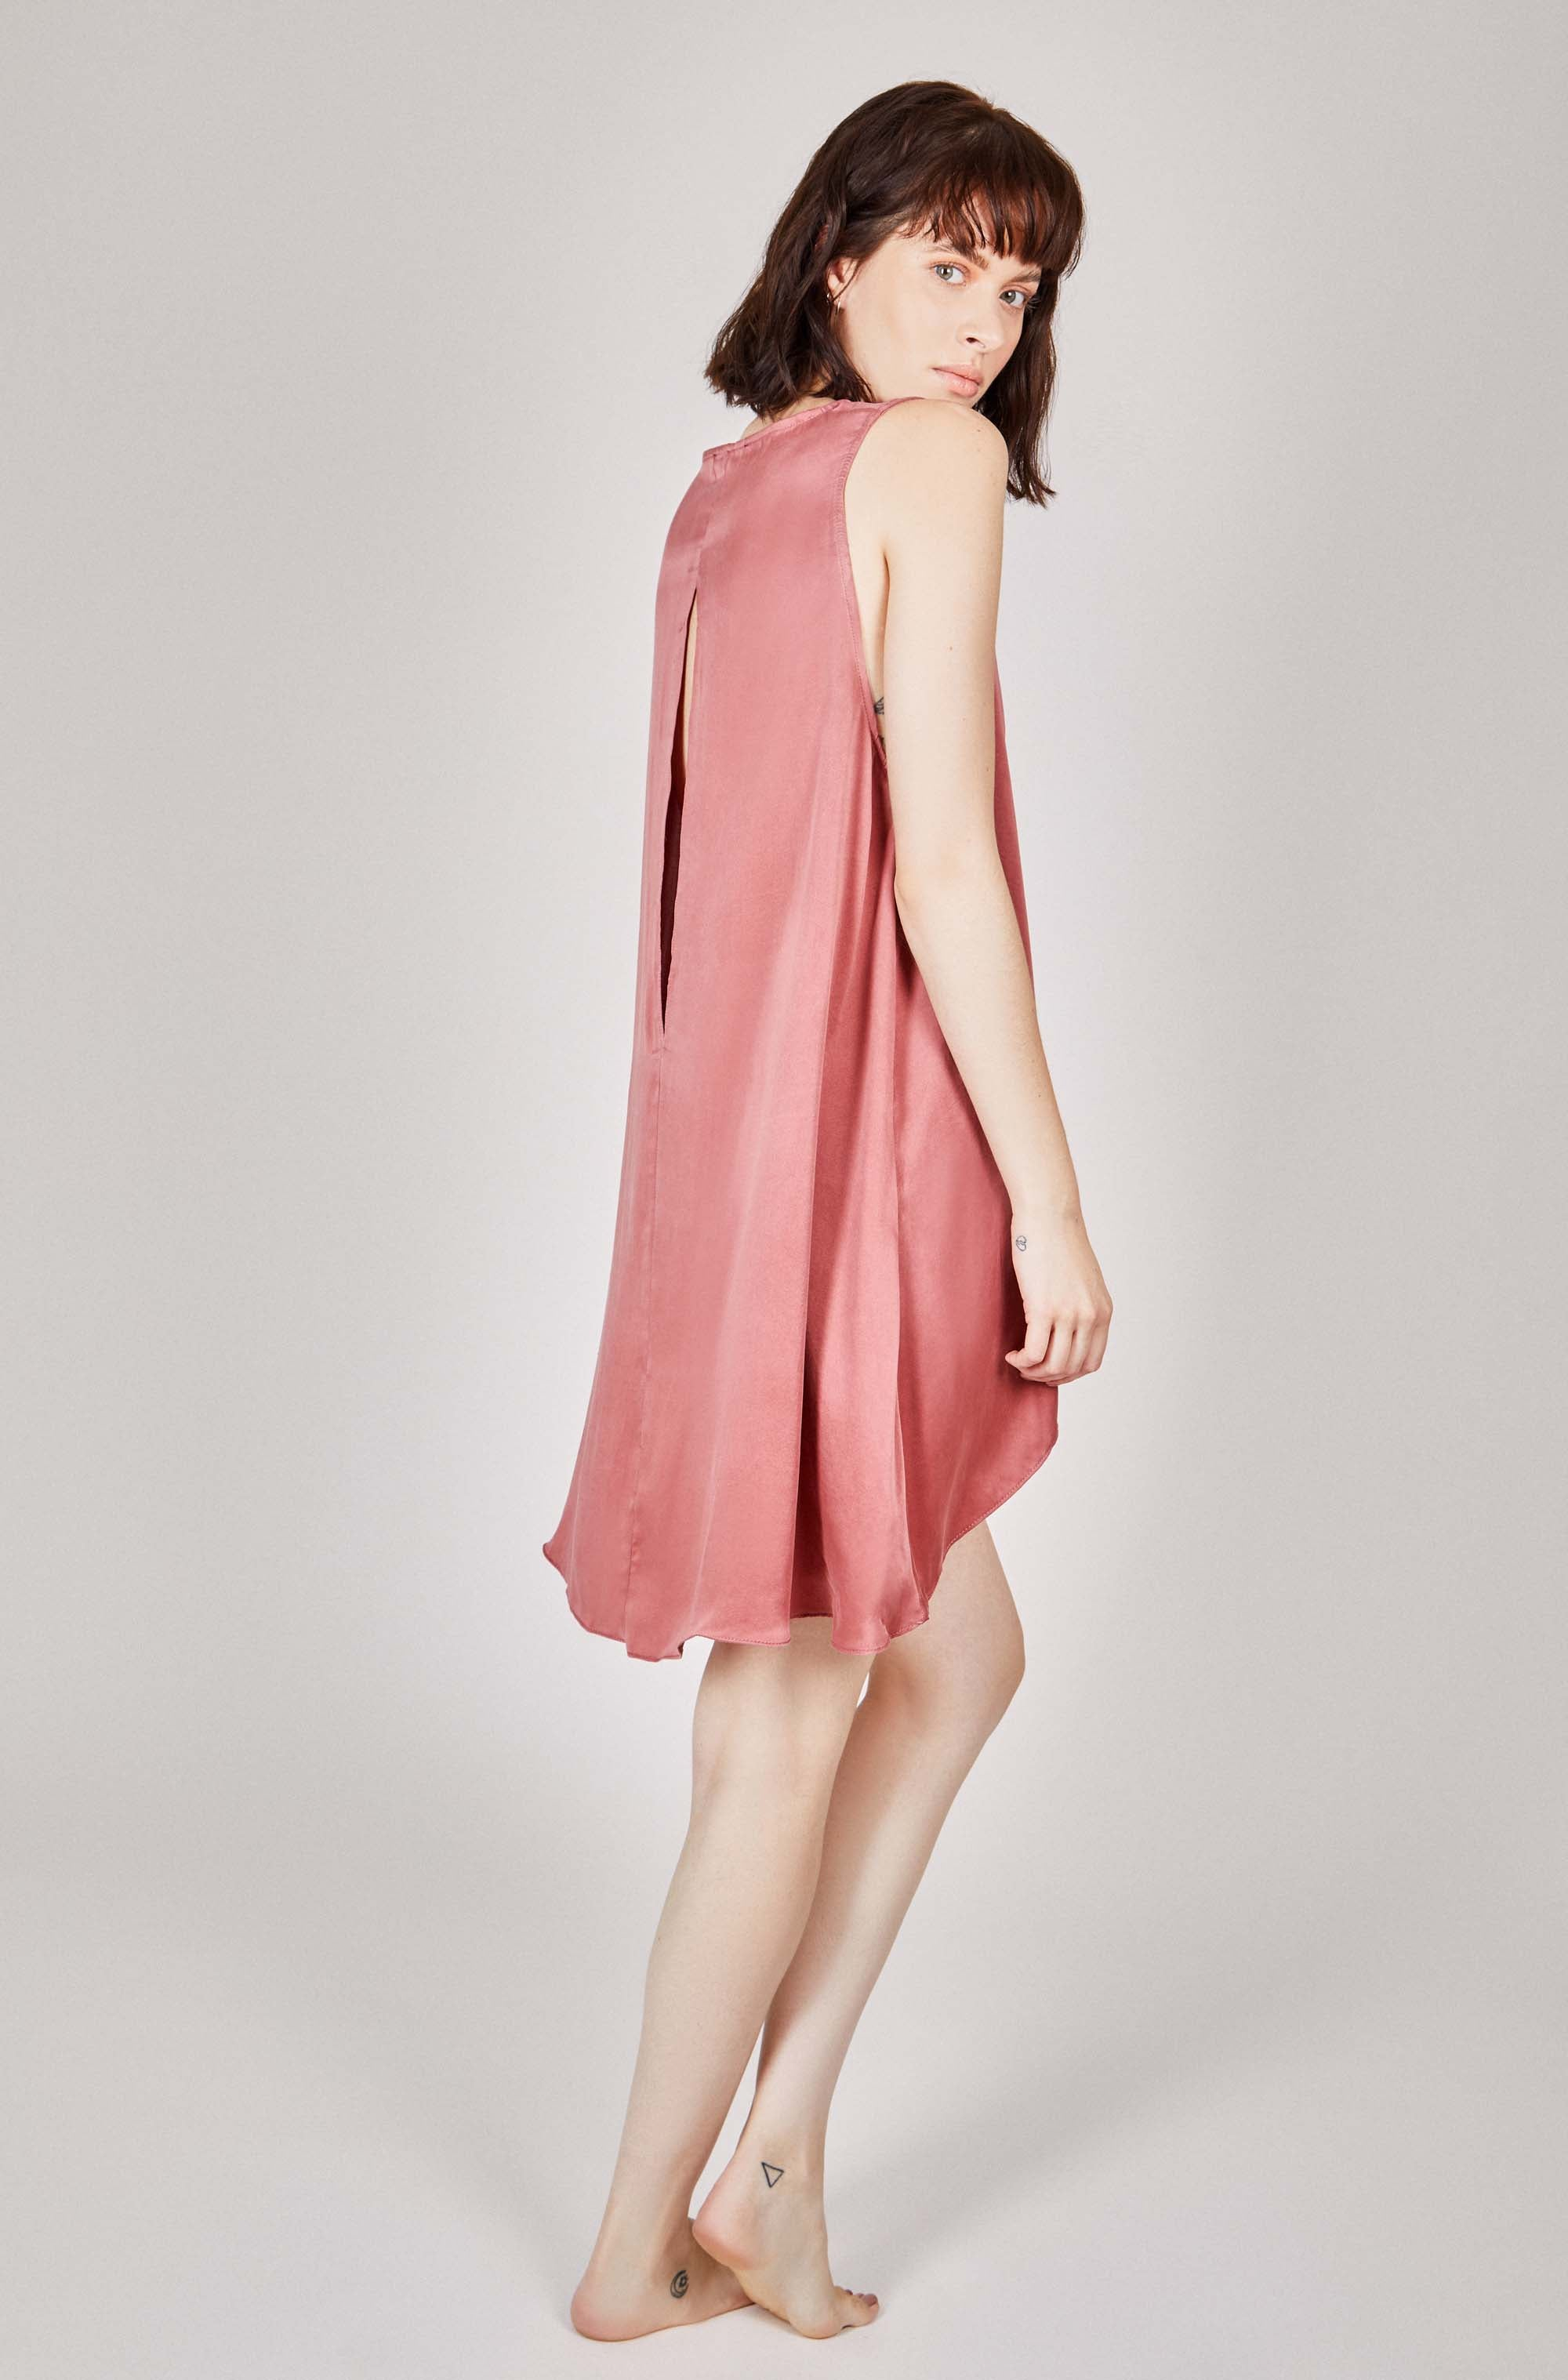 ZONK Organic Silk Chemise in Deep Rose